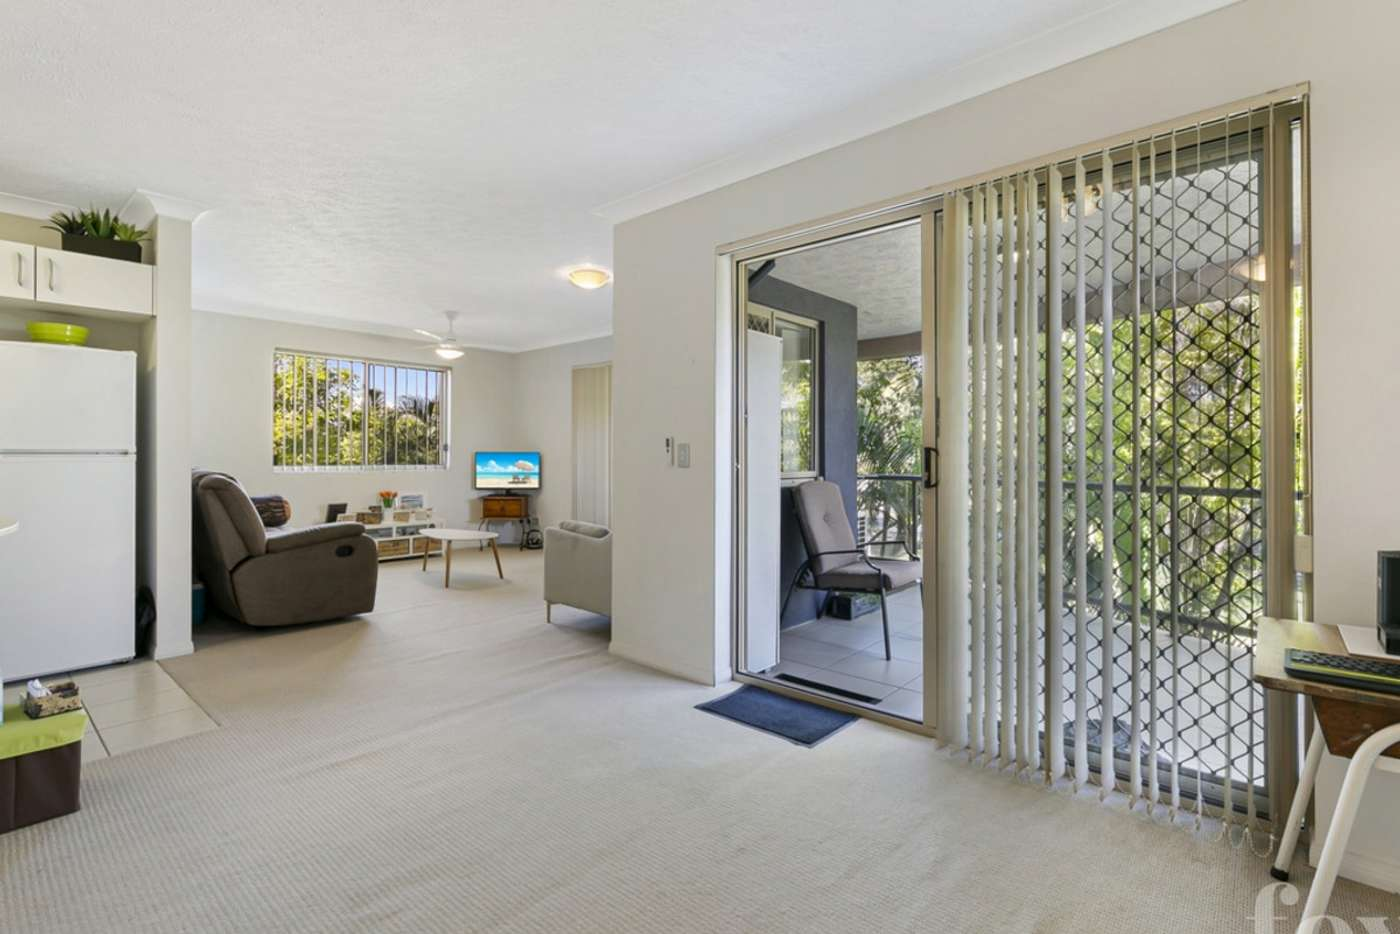 Sixth view of Homely unit listing, 3/21 Parr Street, Biggera Waters QLD 4216